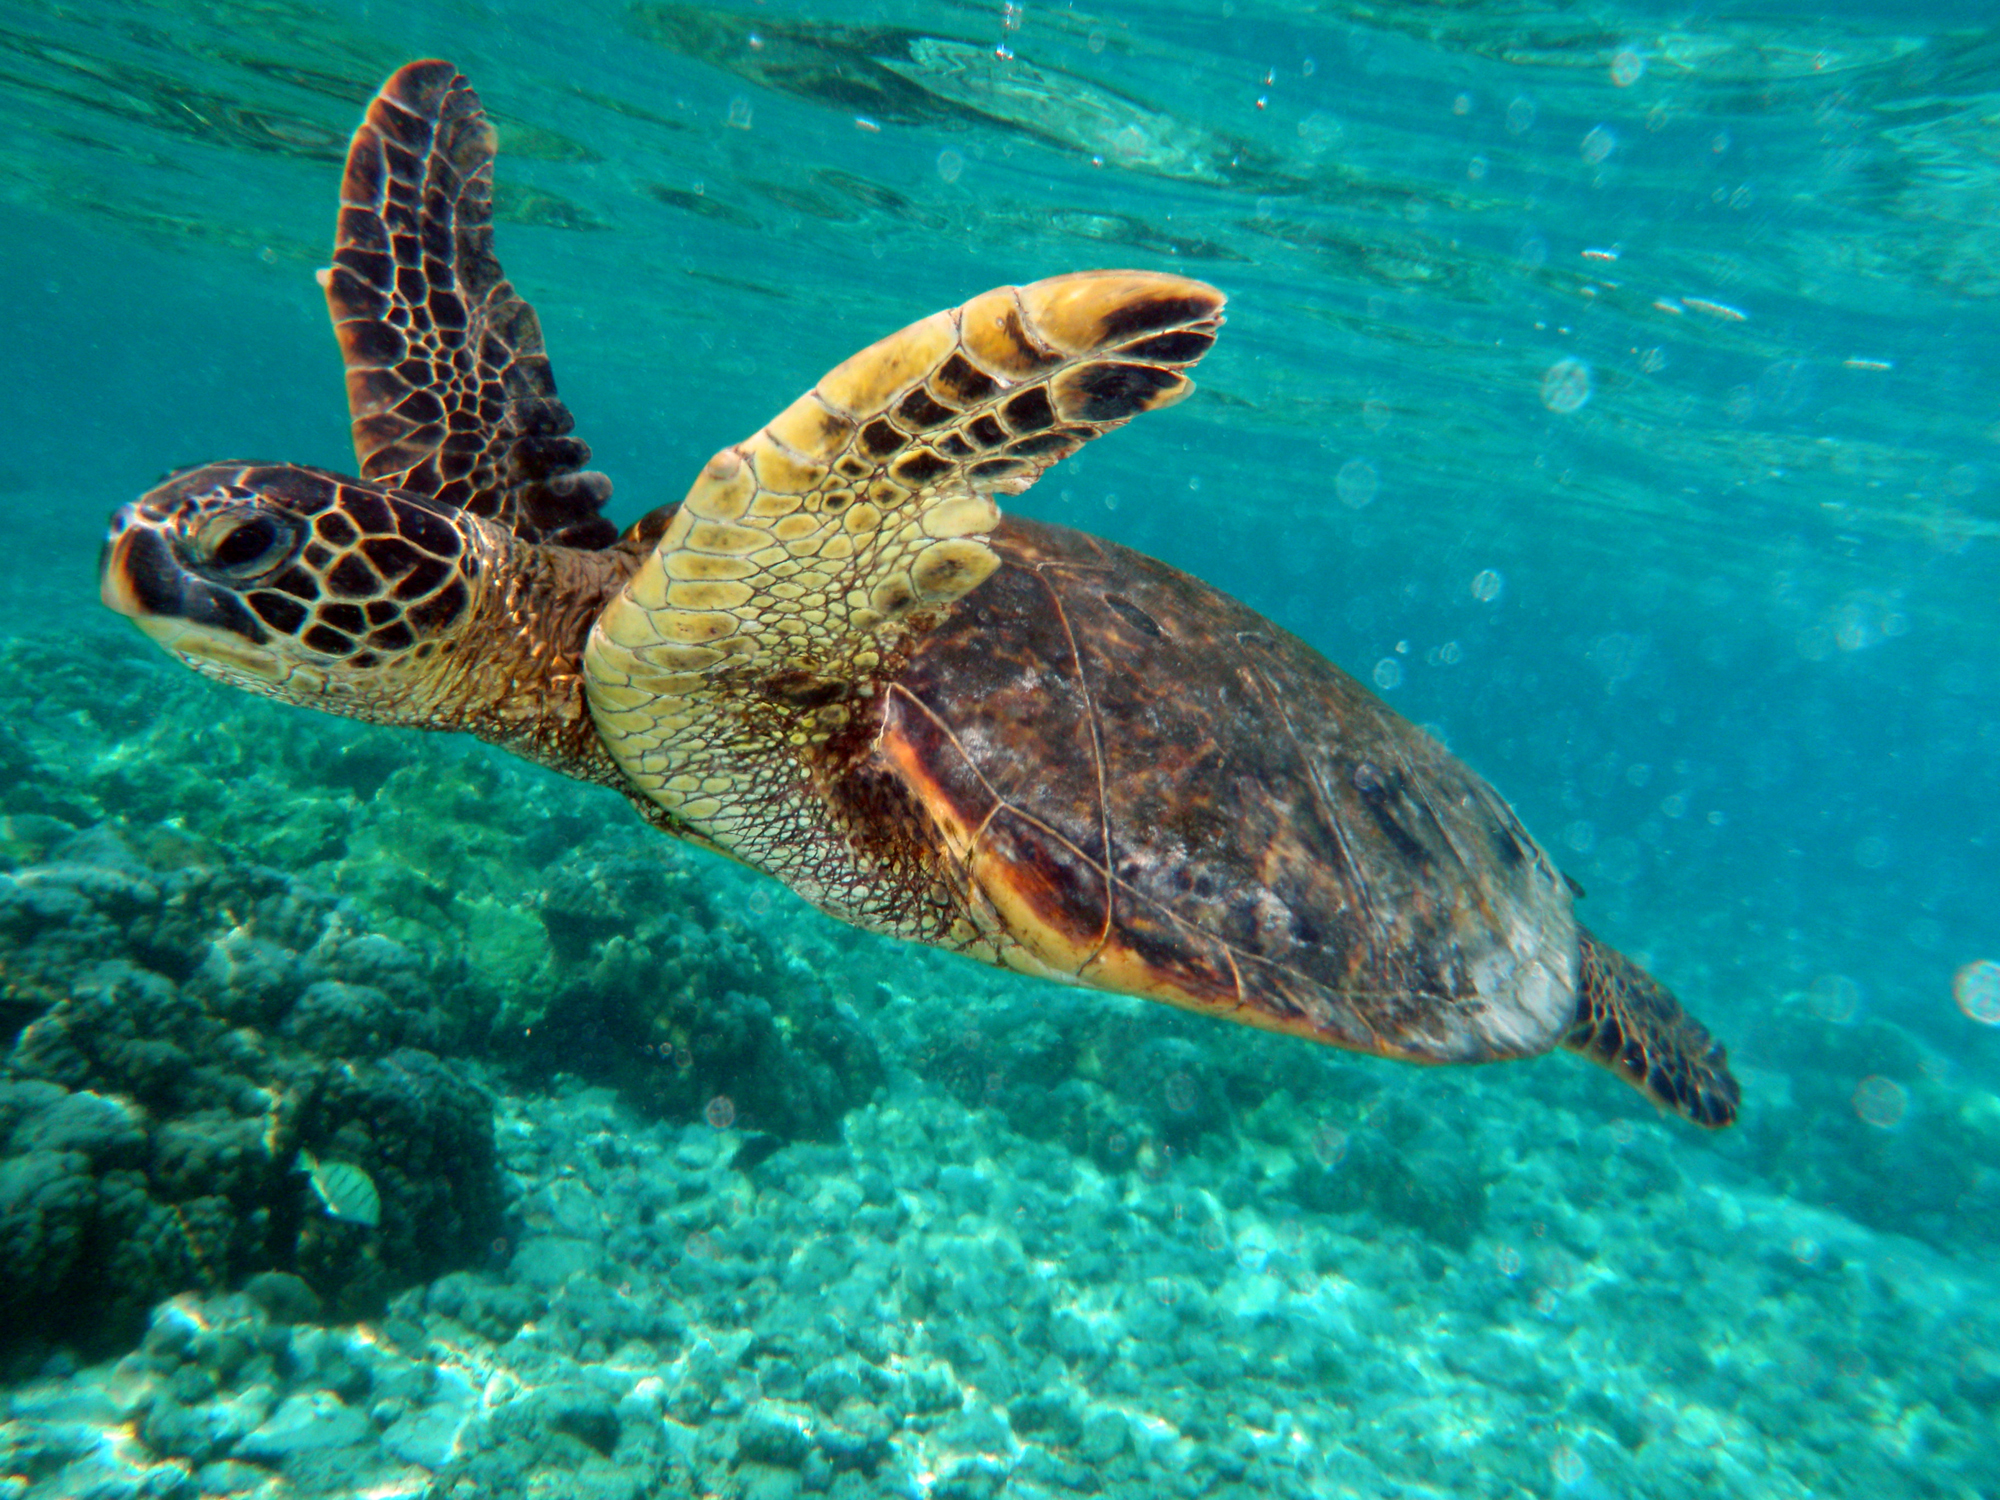 https://upload.wikimedia.org/wikipedia/commons/4/41/Green_turtle_swimming_in_Kona_May_2010.jpg